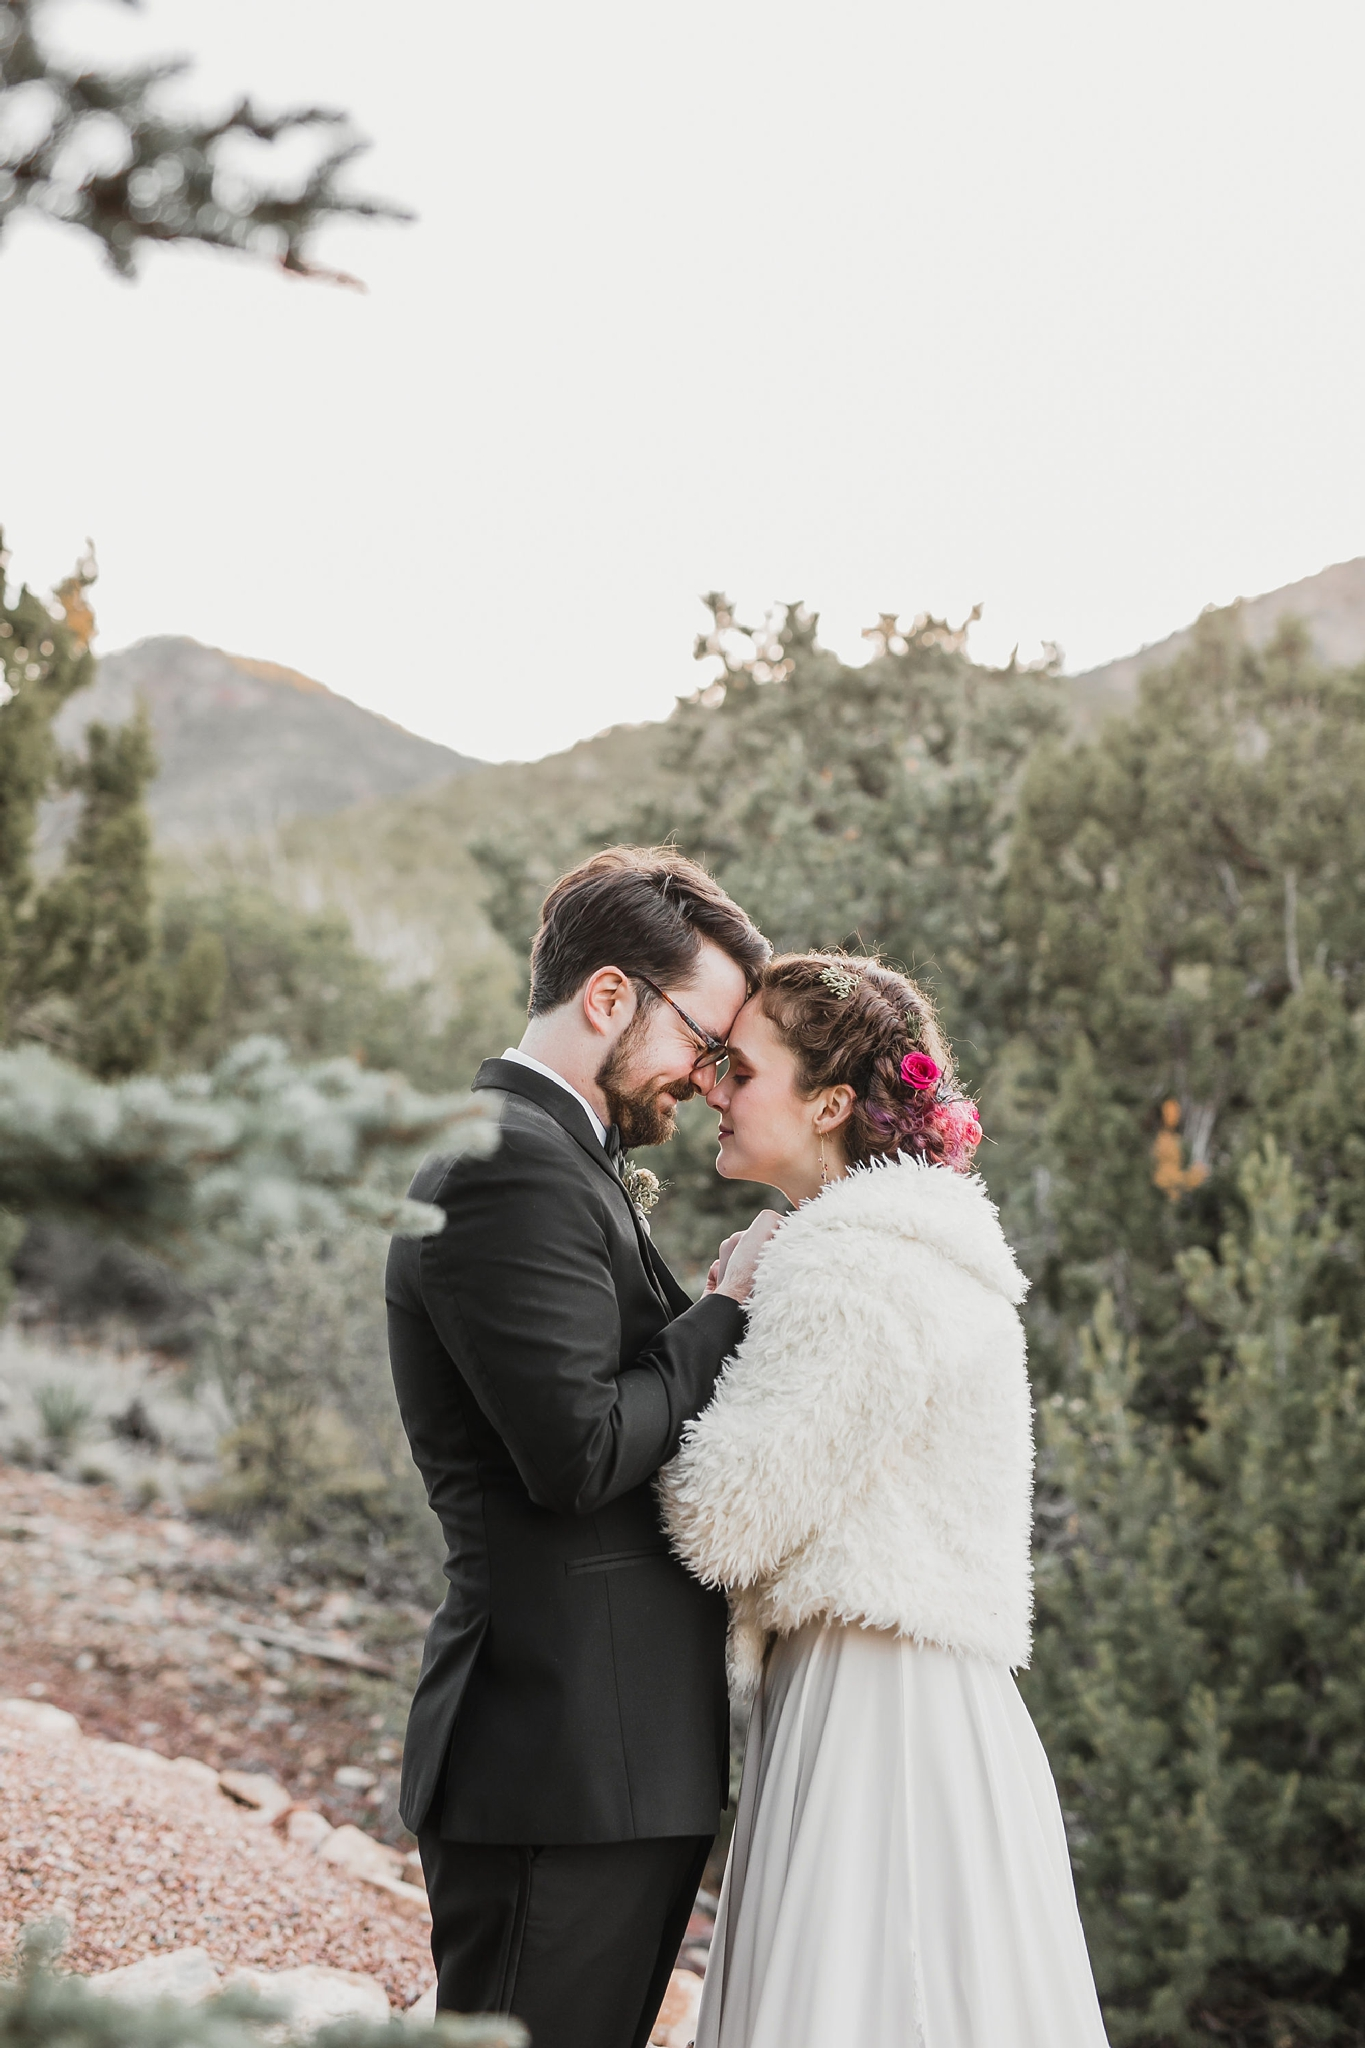 Alicia+lucia+photography+-+albuquerque+wedding+photographer+-+santa+fe+wedding+photography+-+new+mexico+wedding+photographer+-+new+mexico+wedding+-+engagement+-+santa+fe+wedding+-+hacienda+dona+andrea+-+hacienda+dona+andrea+wedding_0078.jpg